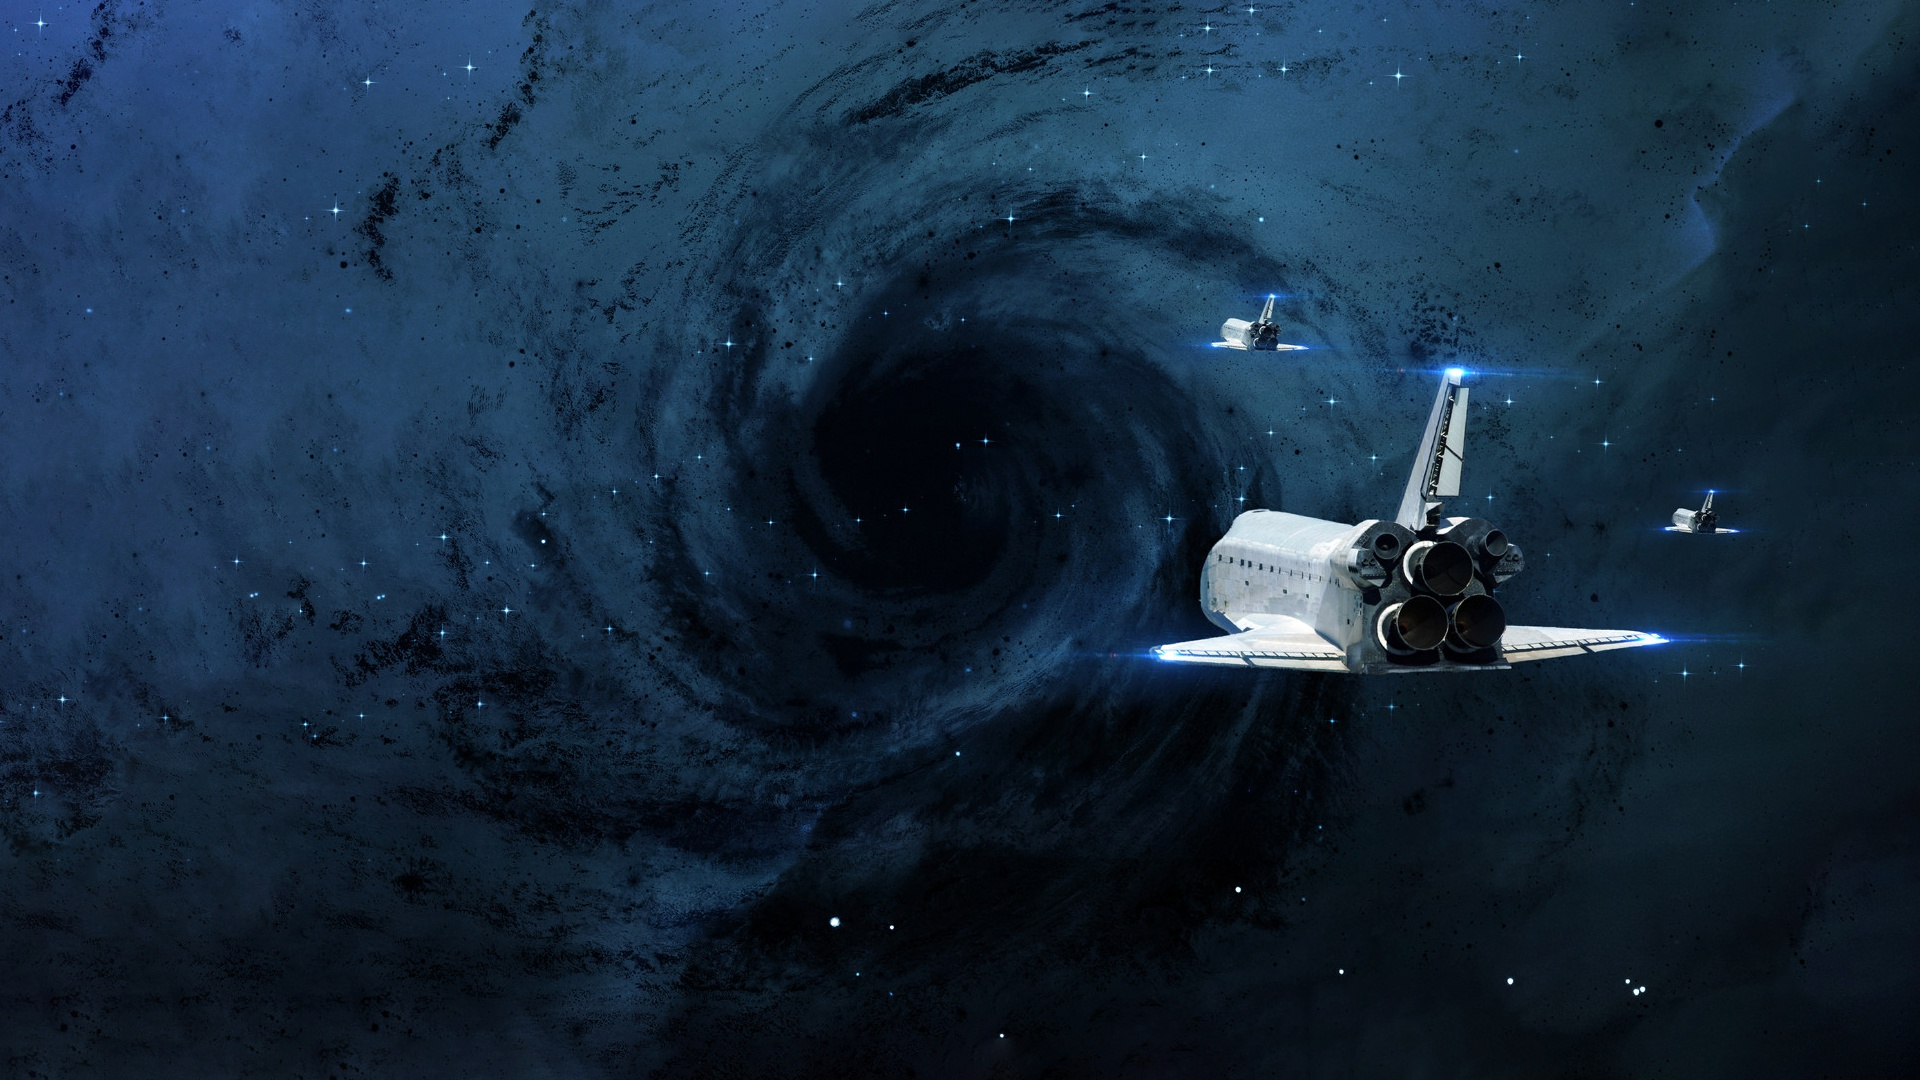 Wallpaper of space shuttle space stars black hole - Black space wallpaper ...